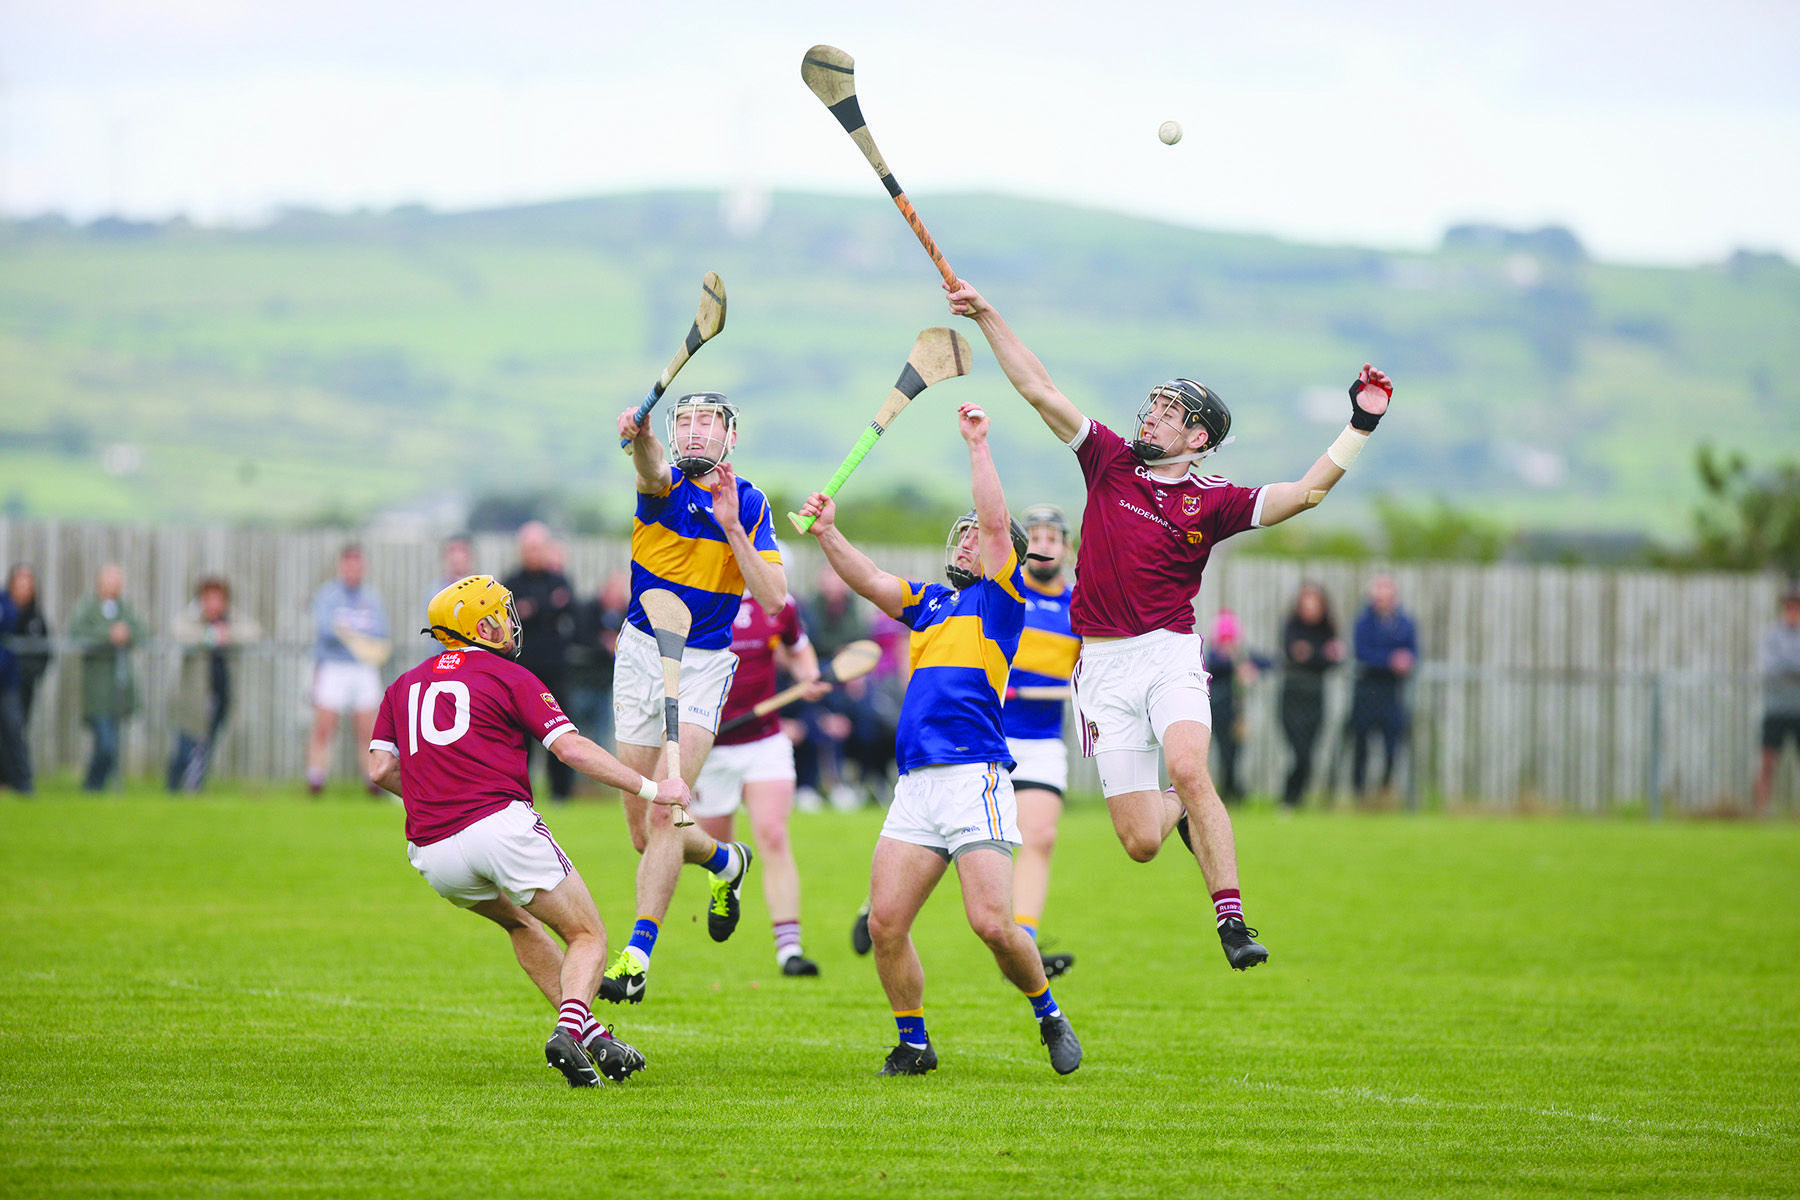 Rossa claimed a one-point win over Cushendall in last year's quarter-final and another close affair is expected this Sunday's semi-final